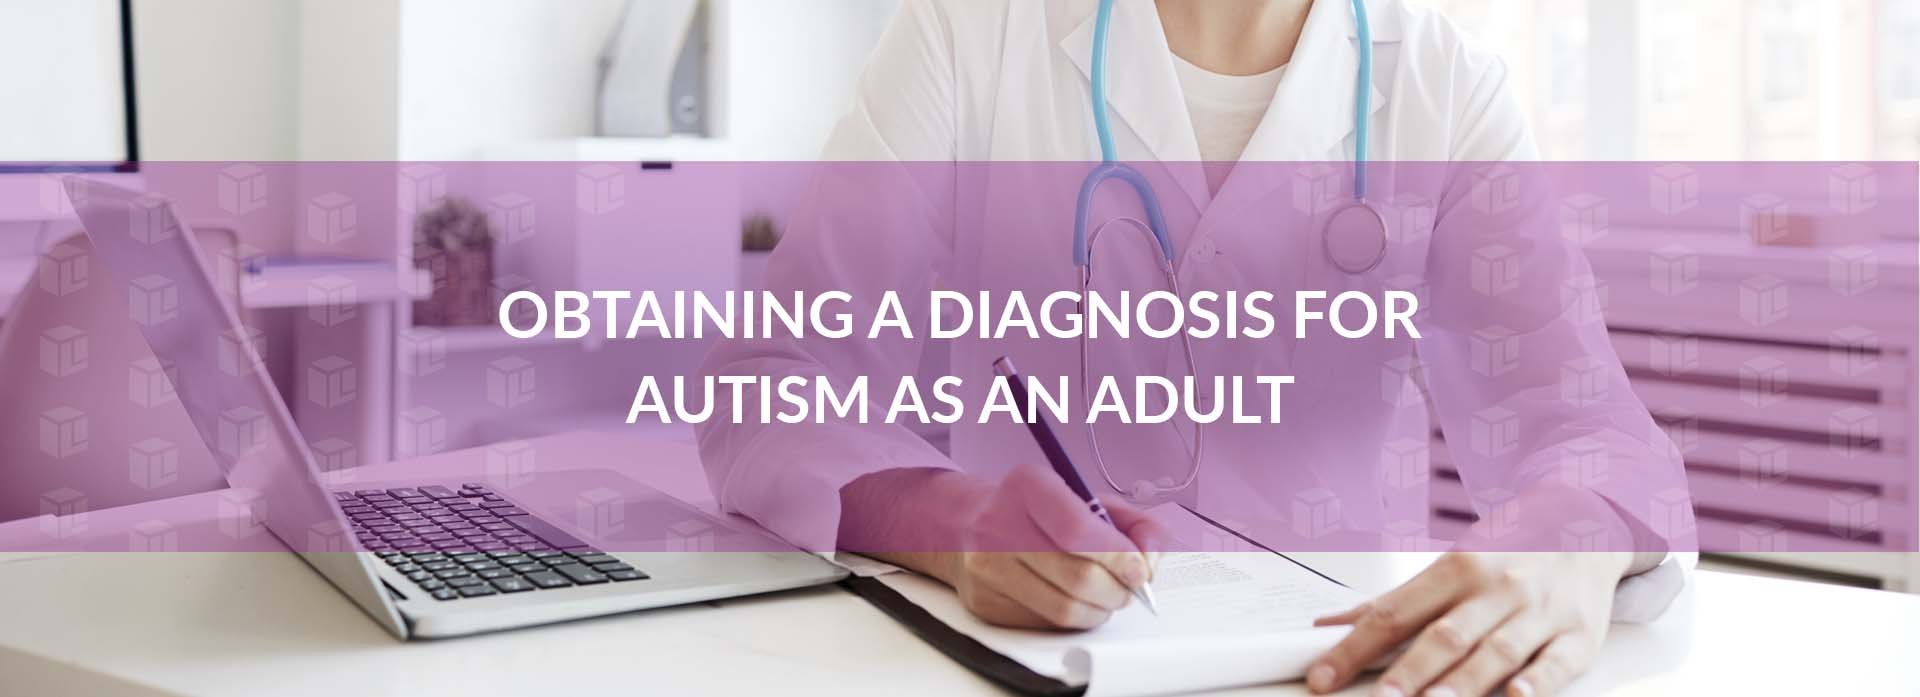 Obtaining A Diagnosis For Autism As An Adult